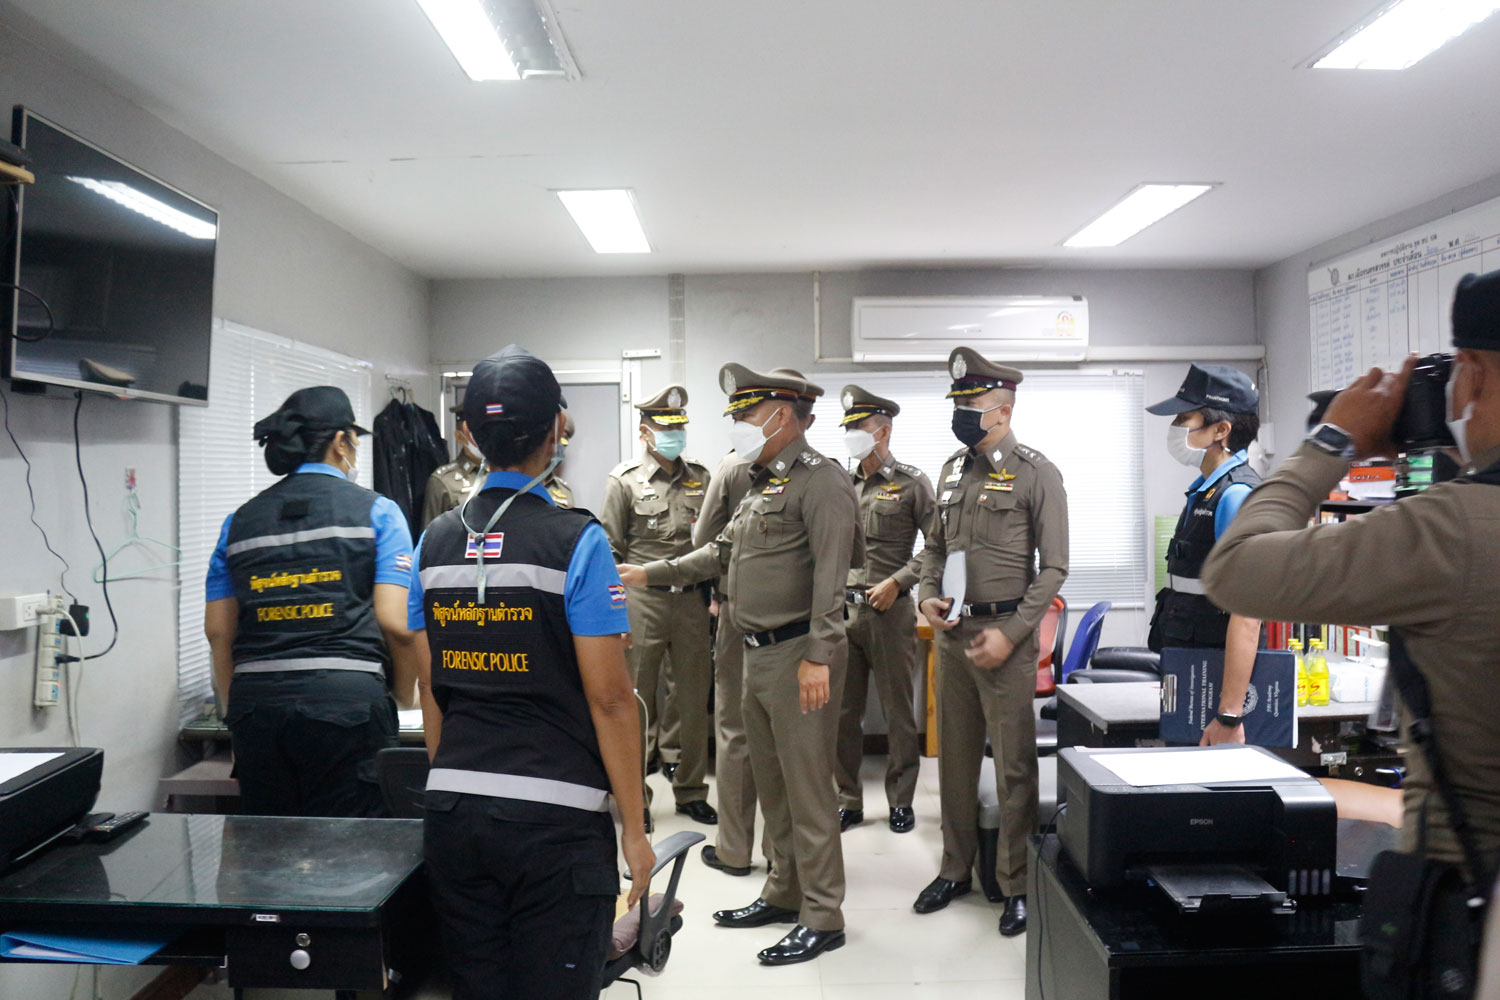 Police examine the interrogation room at Muang police station in Nakhon Sawan province where seven officers allegedly tortured a drug suspect to death, suffocating him with a plastic bag. (Photo: Chalit Phumruang)